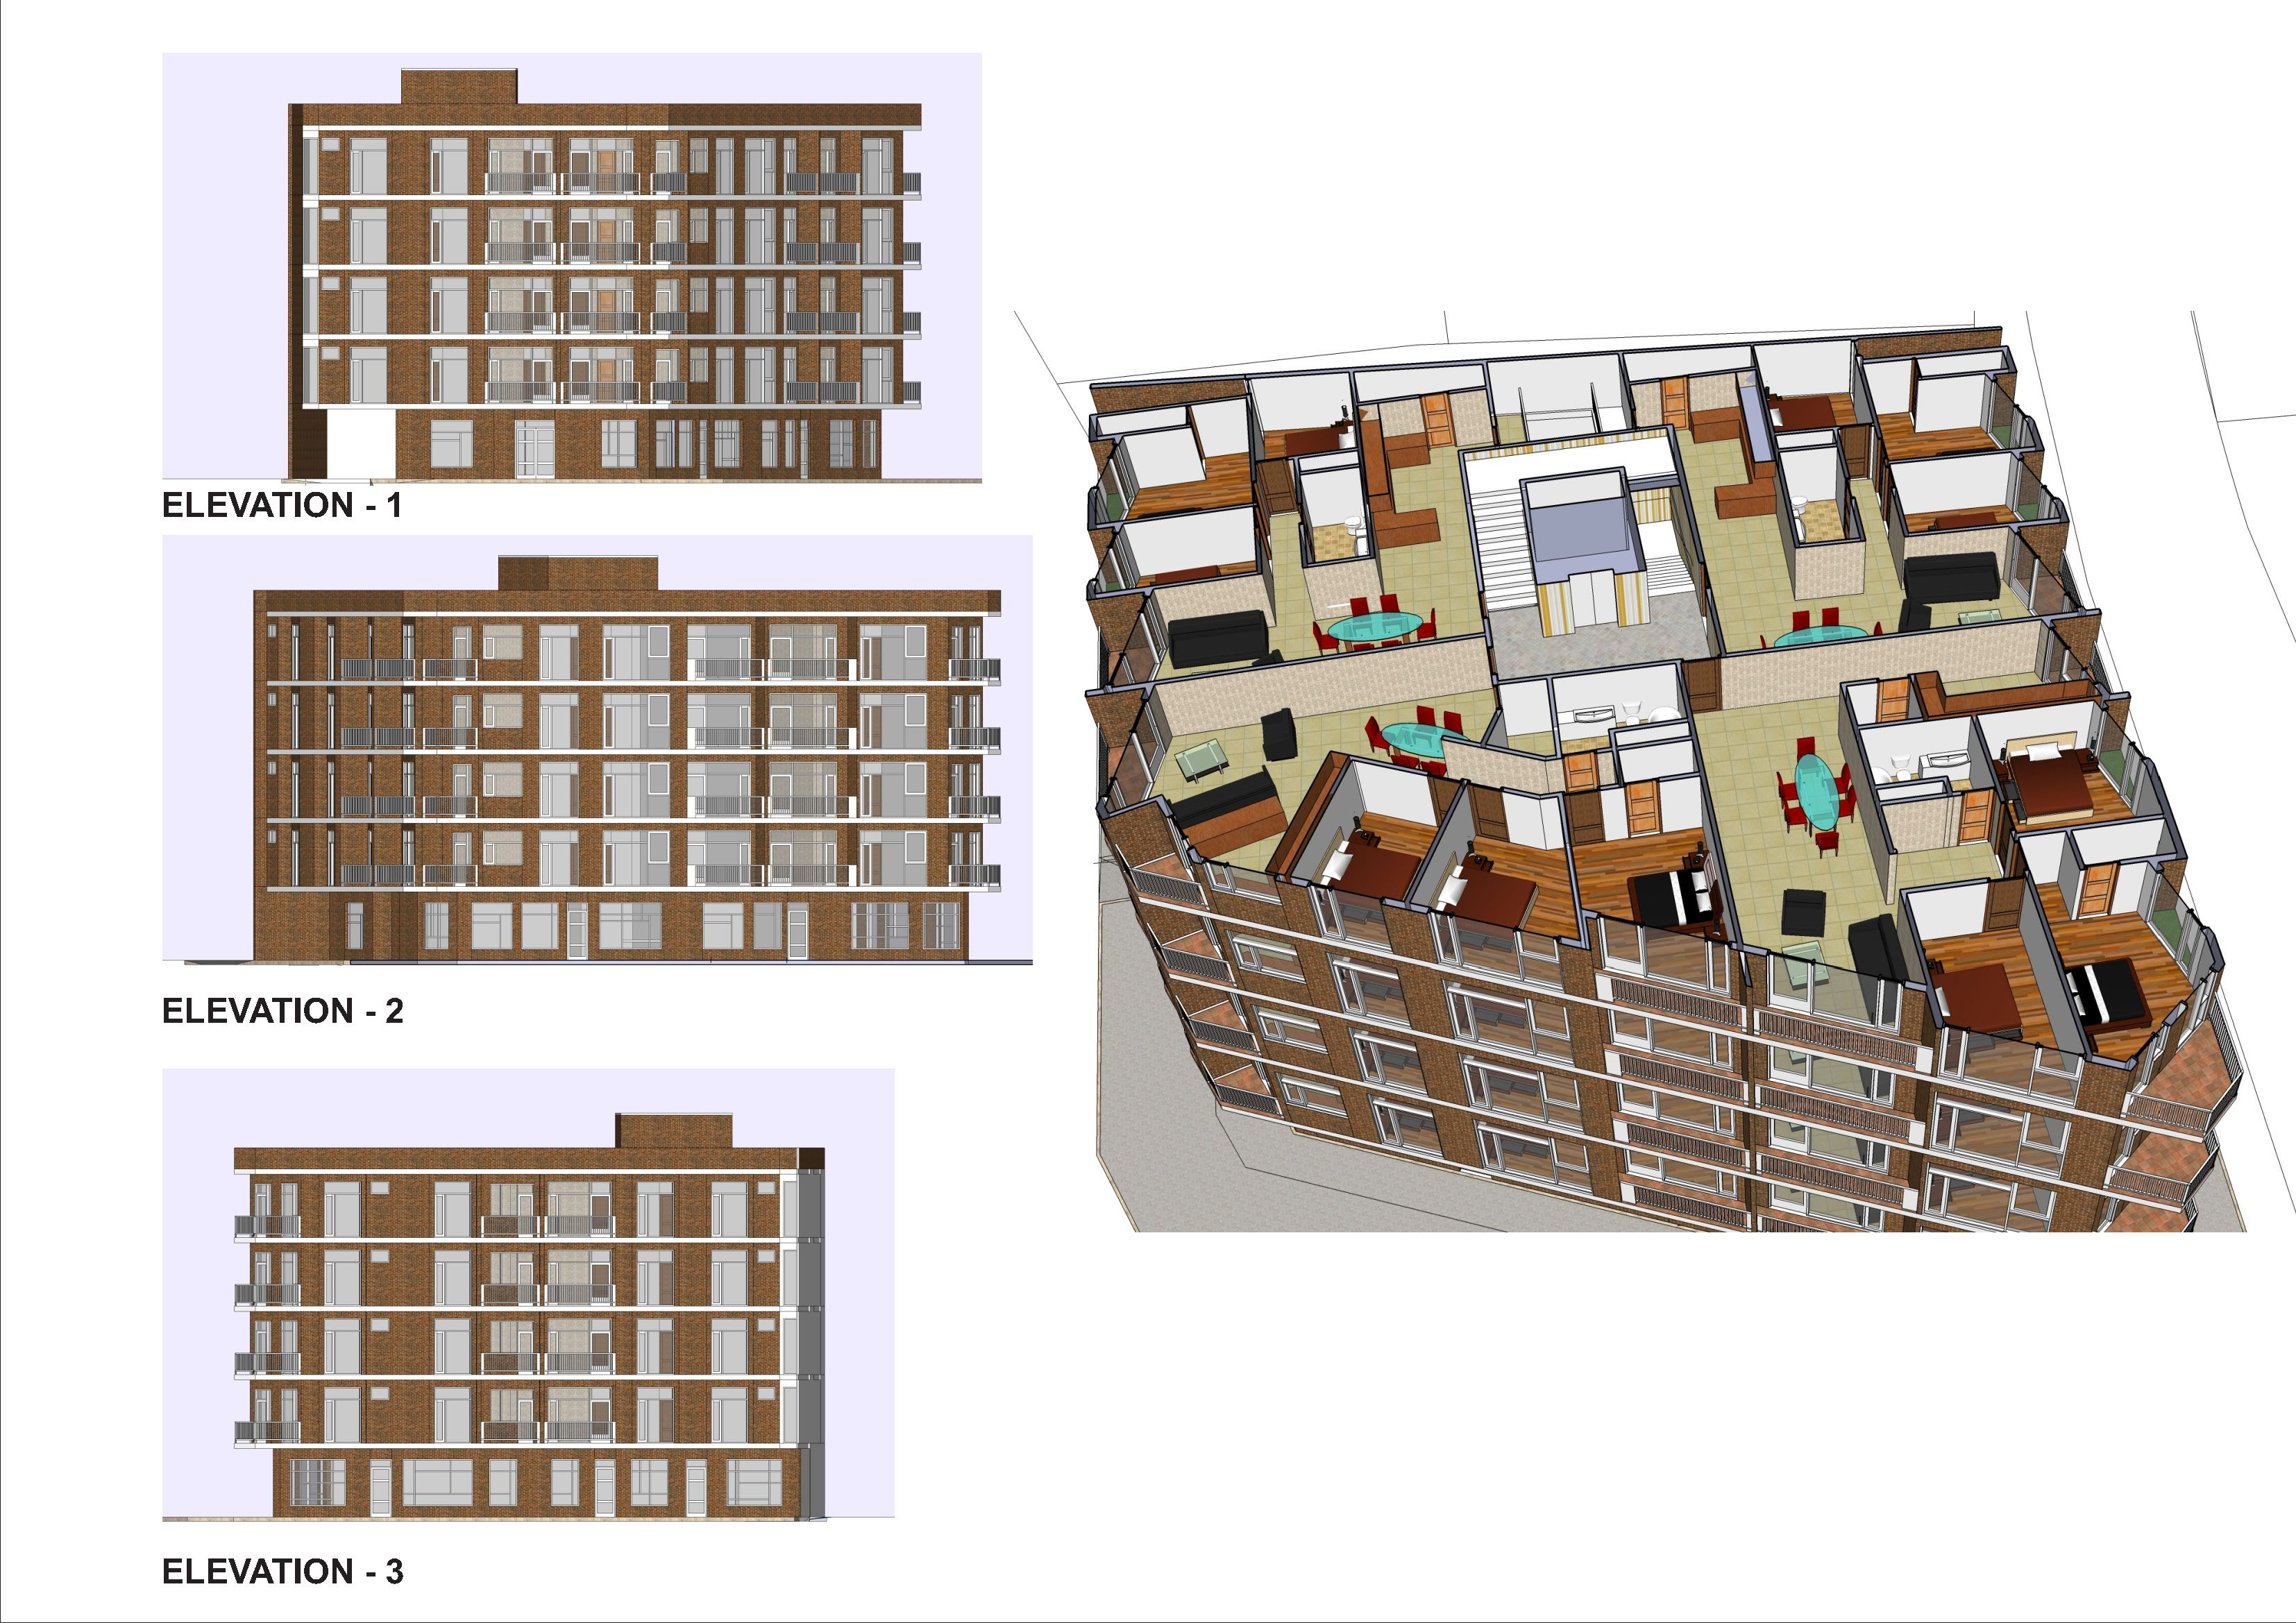 Apartment building plans location aksaray turkey new for Building planner